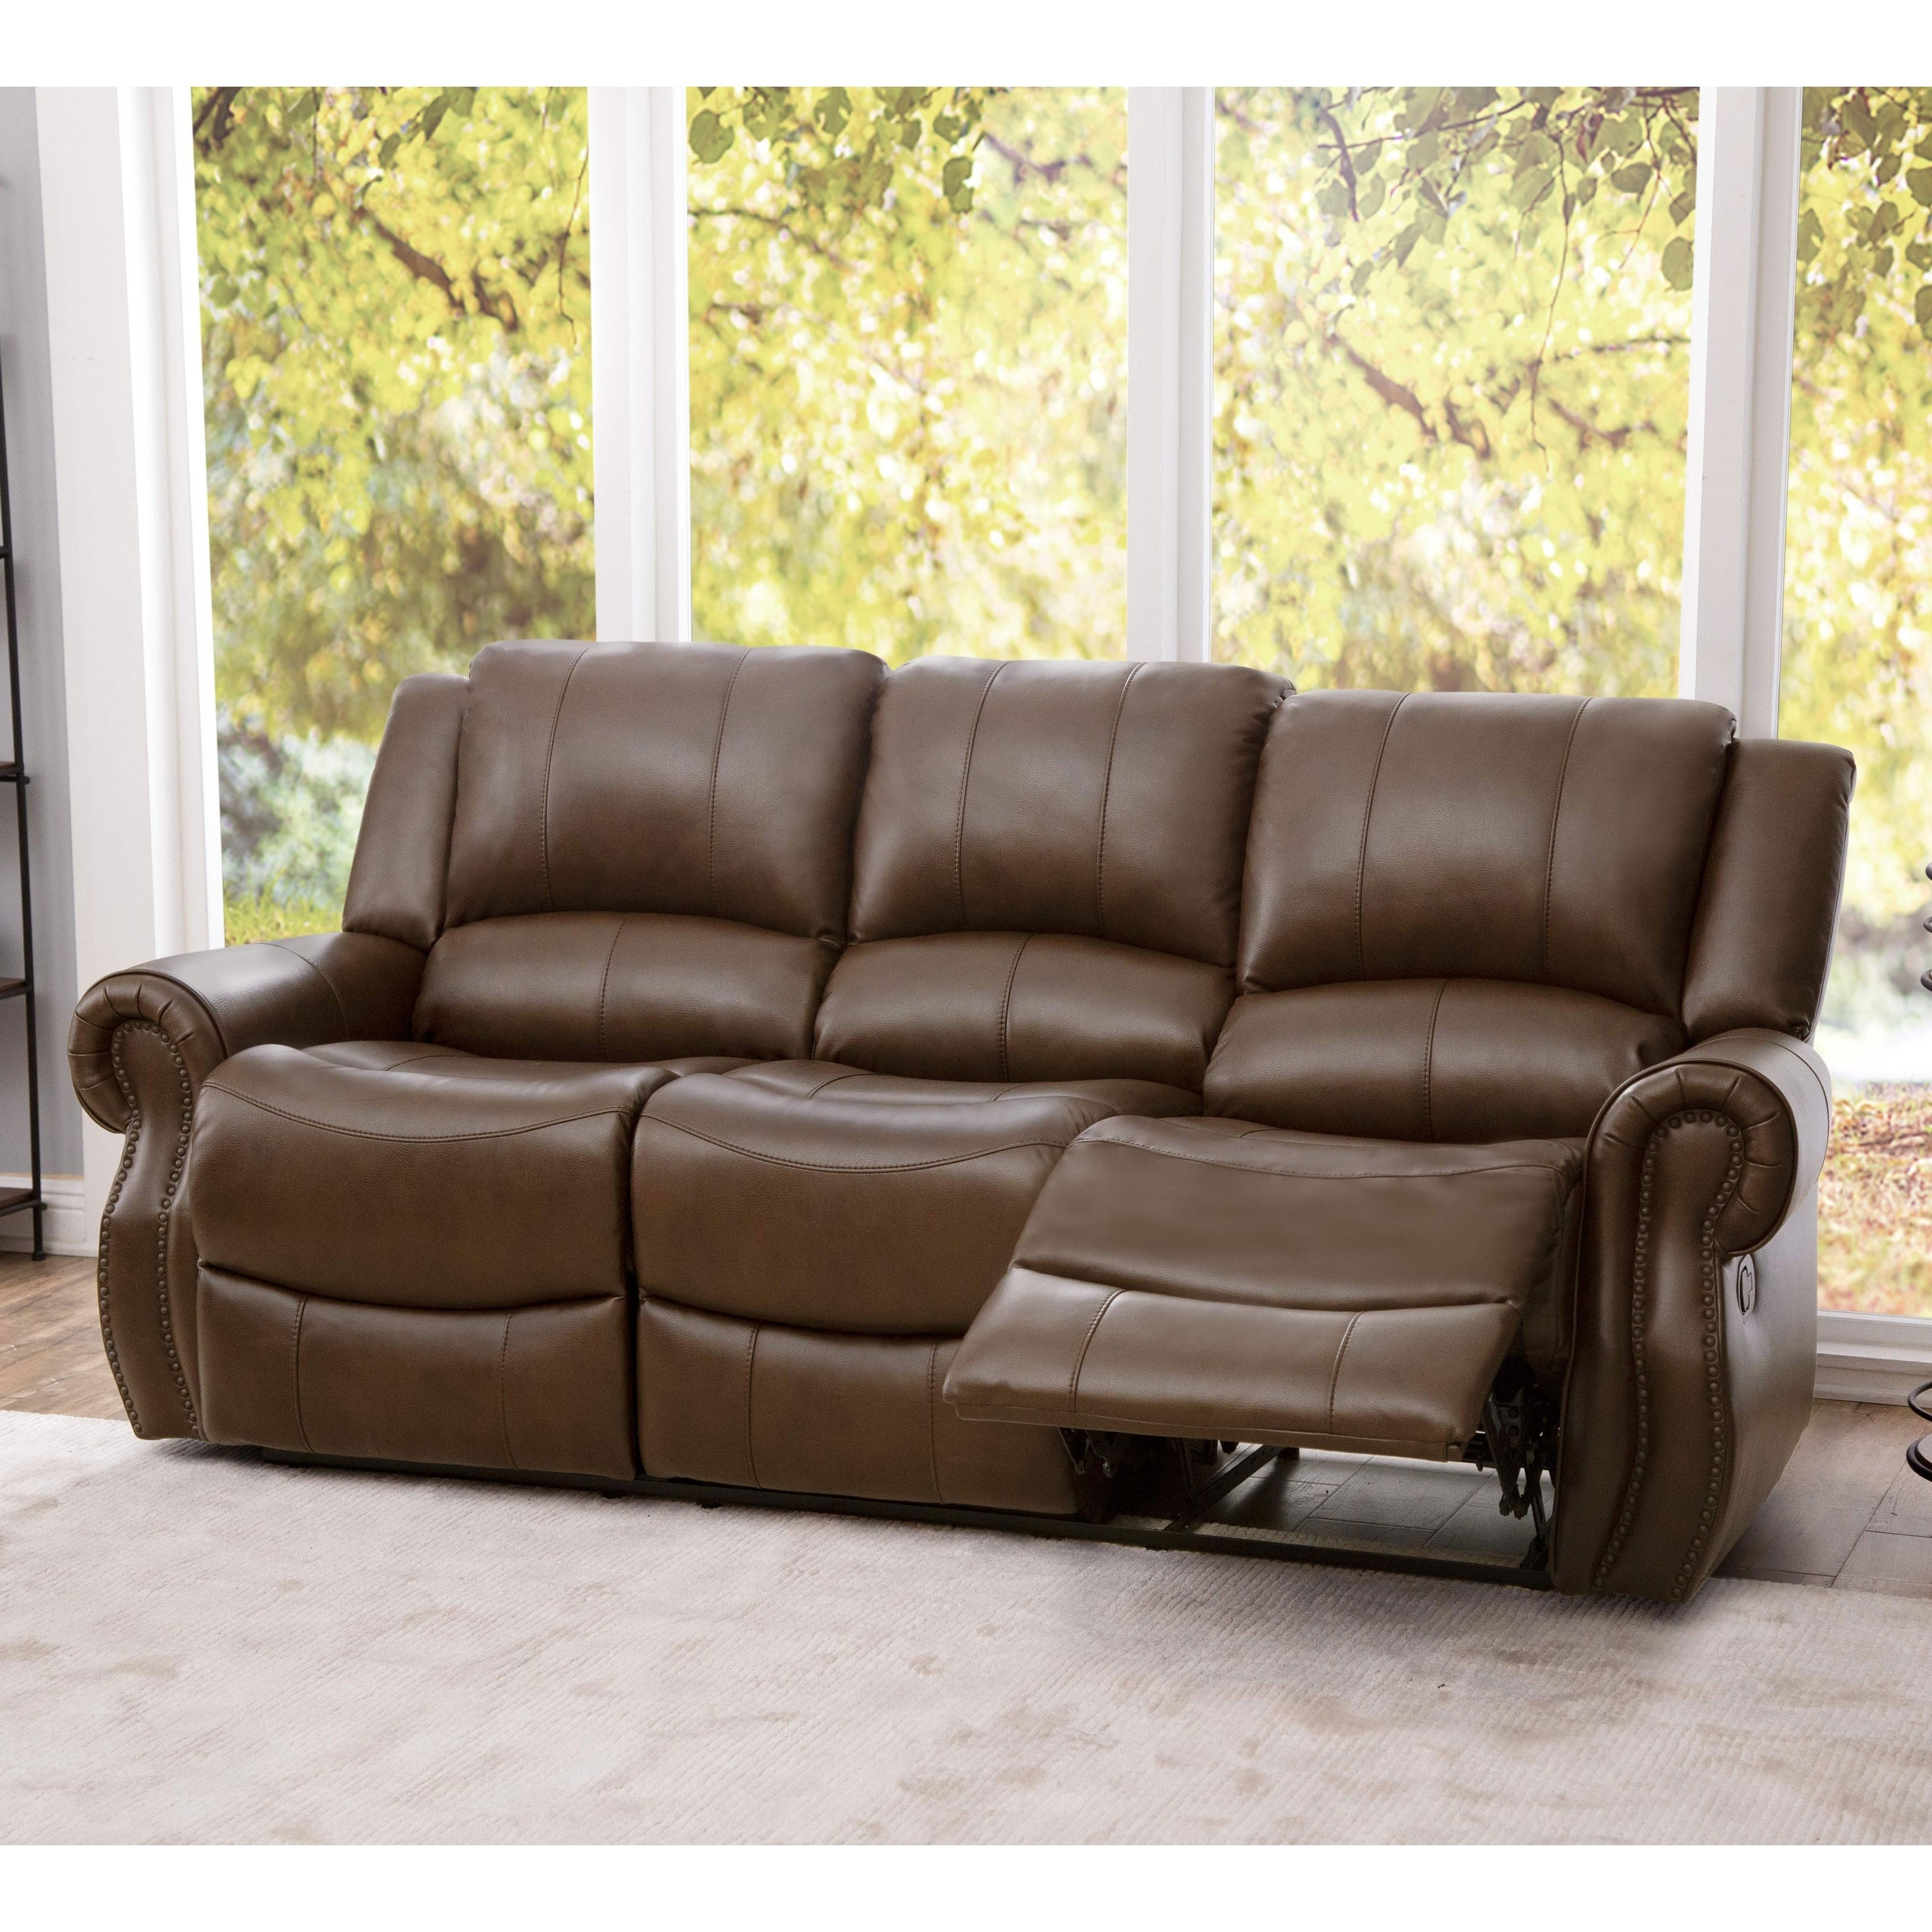 Shop Abbyson Calabasas Mesa Brown Leather Reclining Sofa – On Sale Pertaining To Mesa Foam Oversized Sofa Chairs (Image 18 of 20)